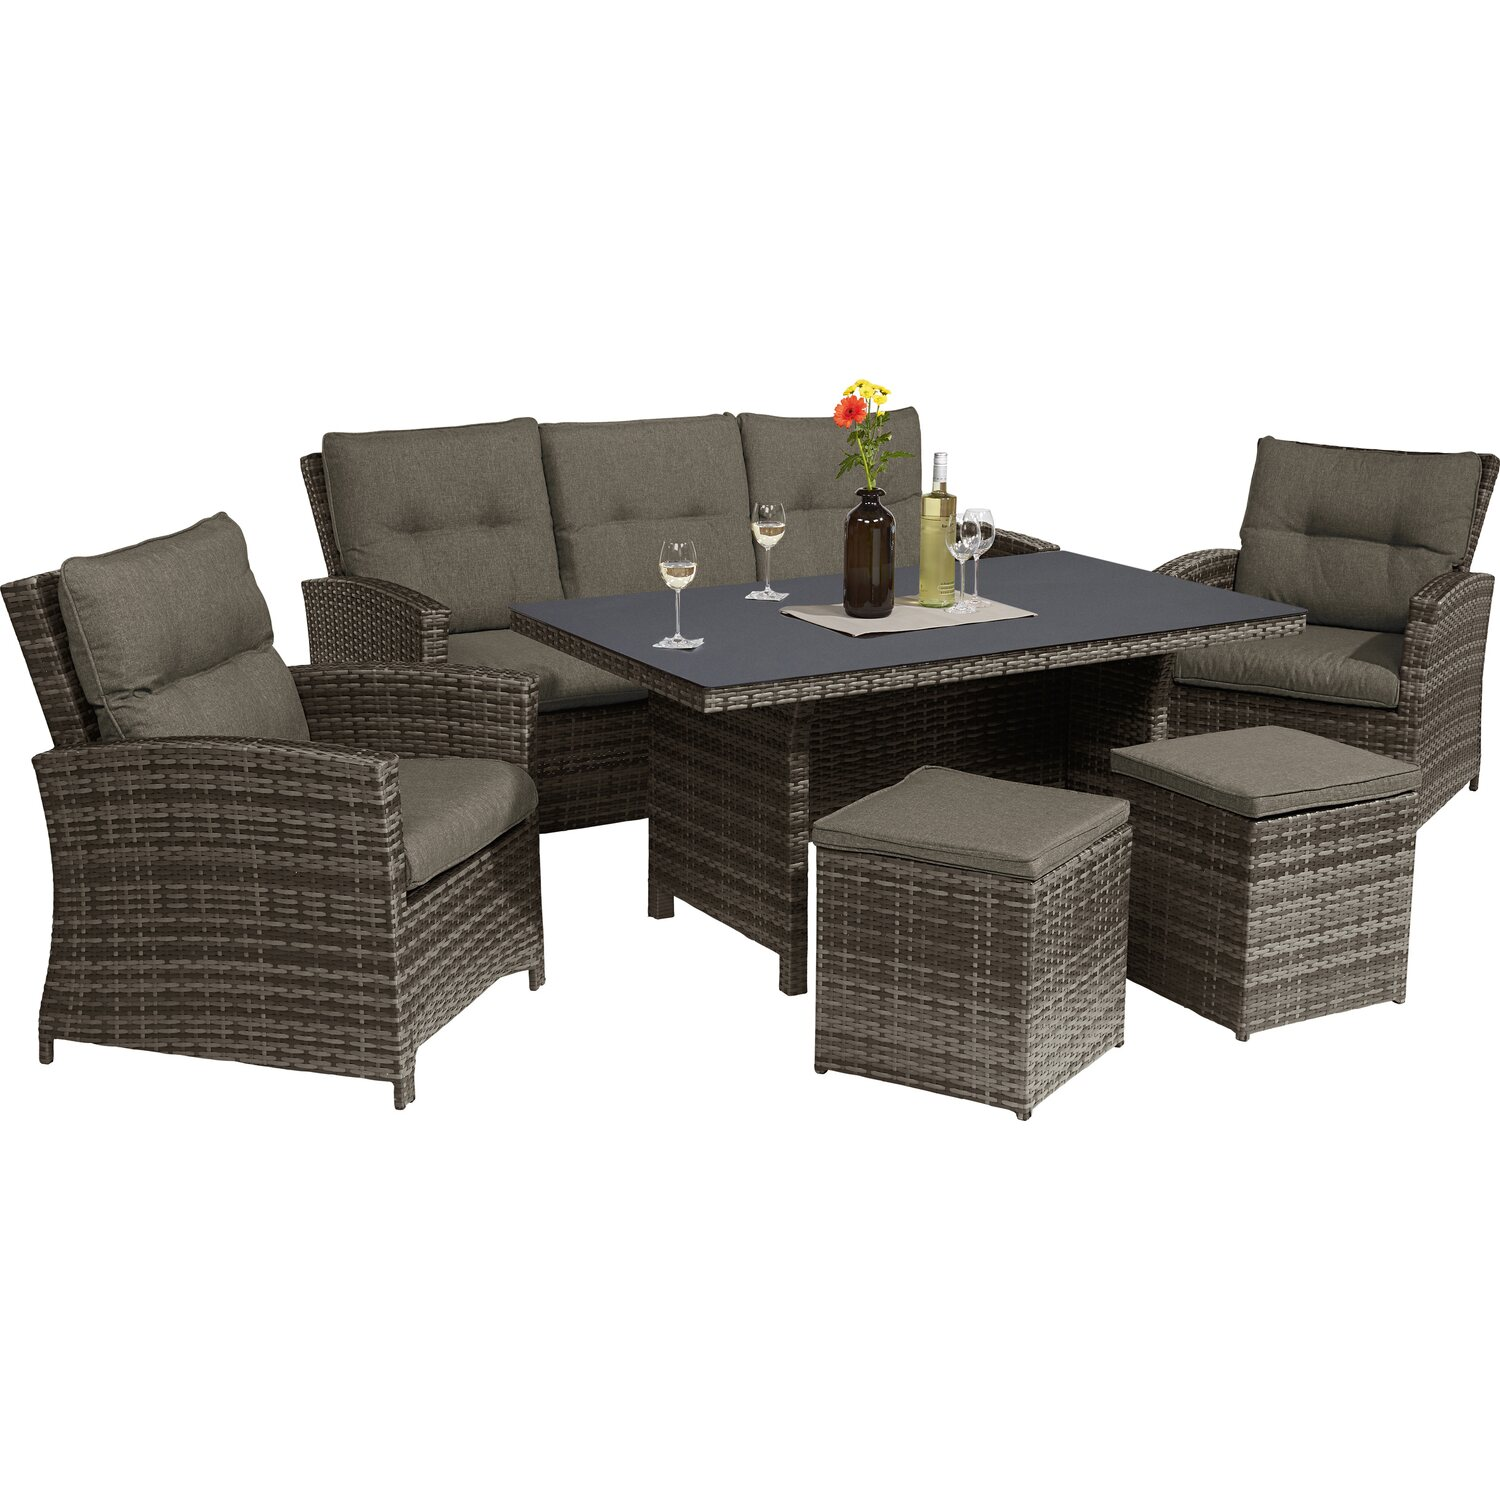 Esstisch Lounge Gruppe Vermont Shadow Earth 6 Teilig